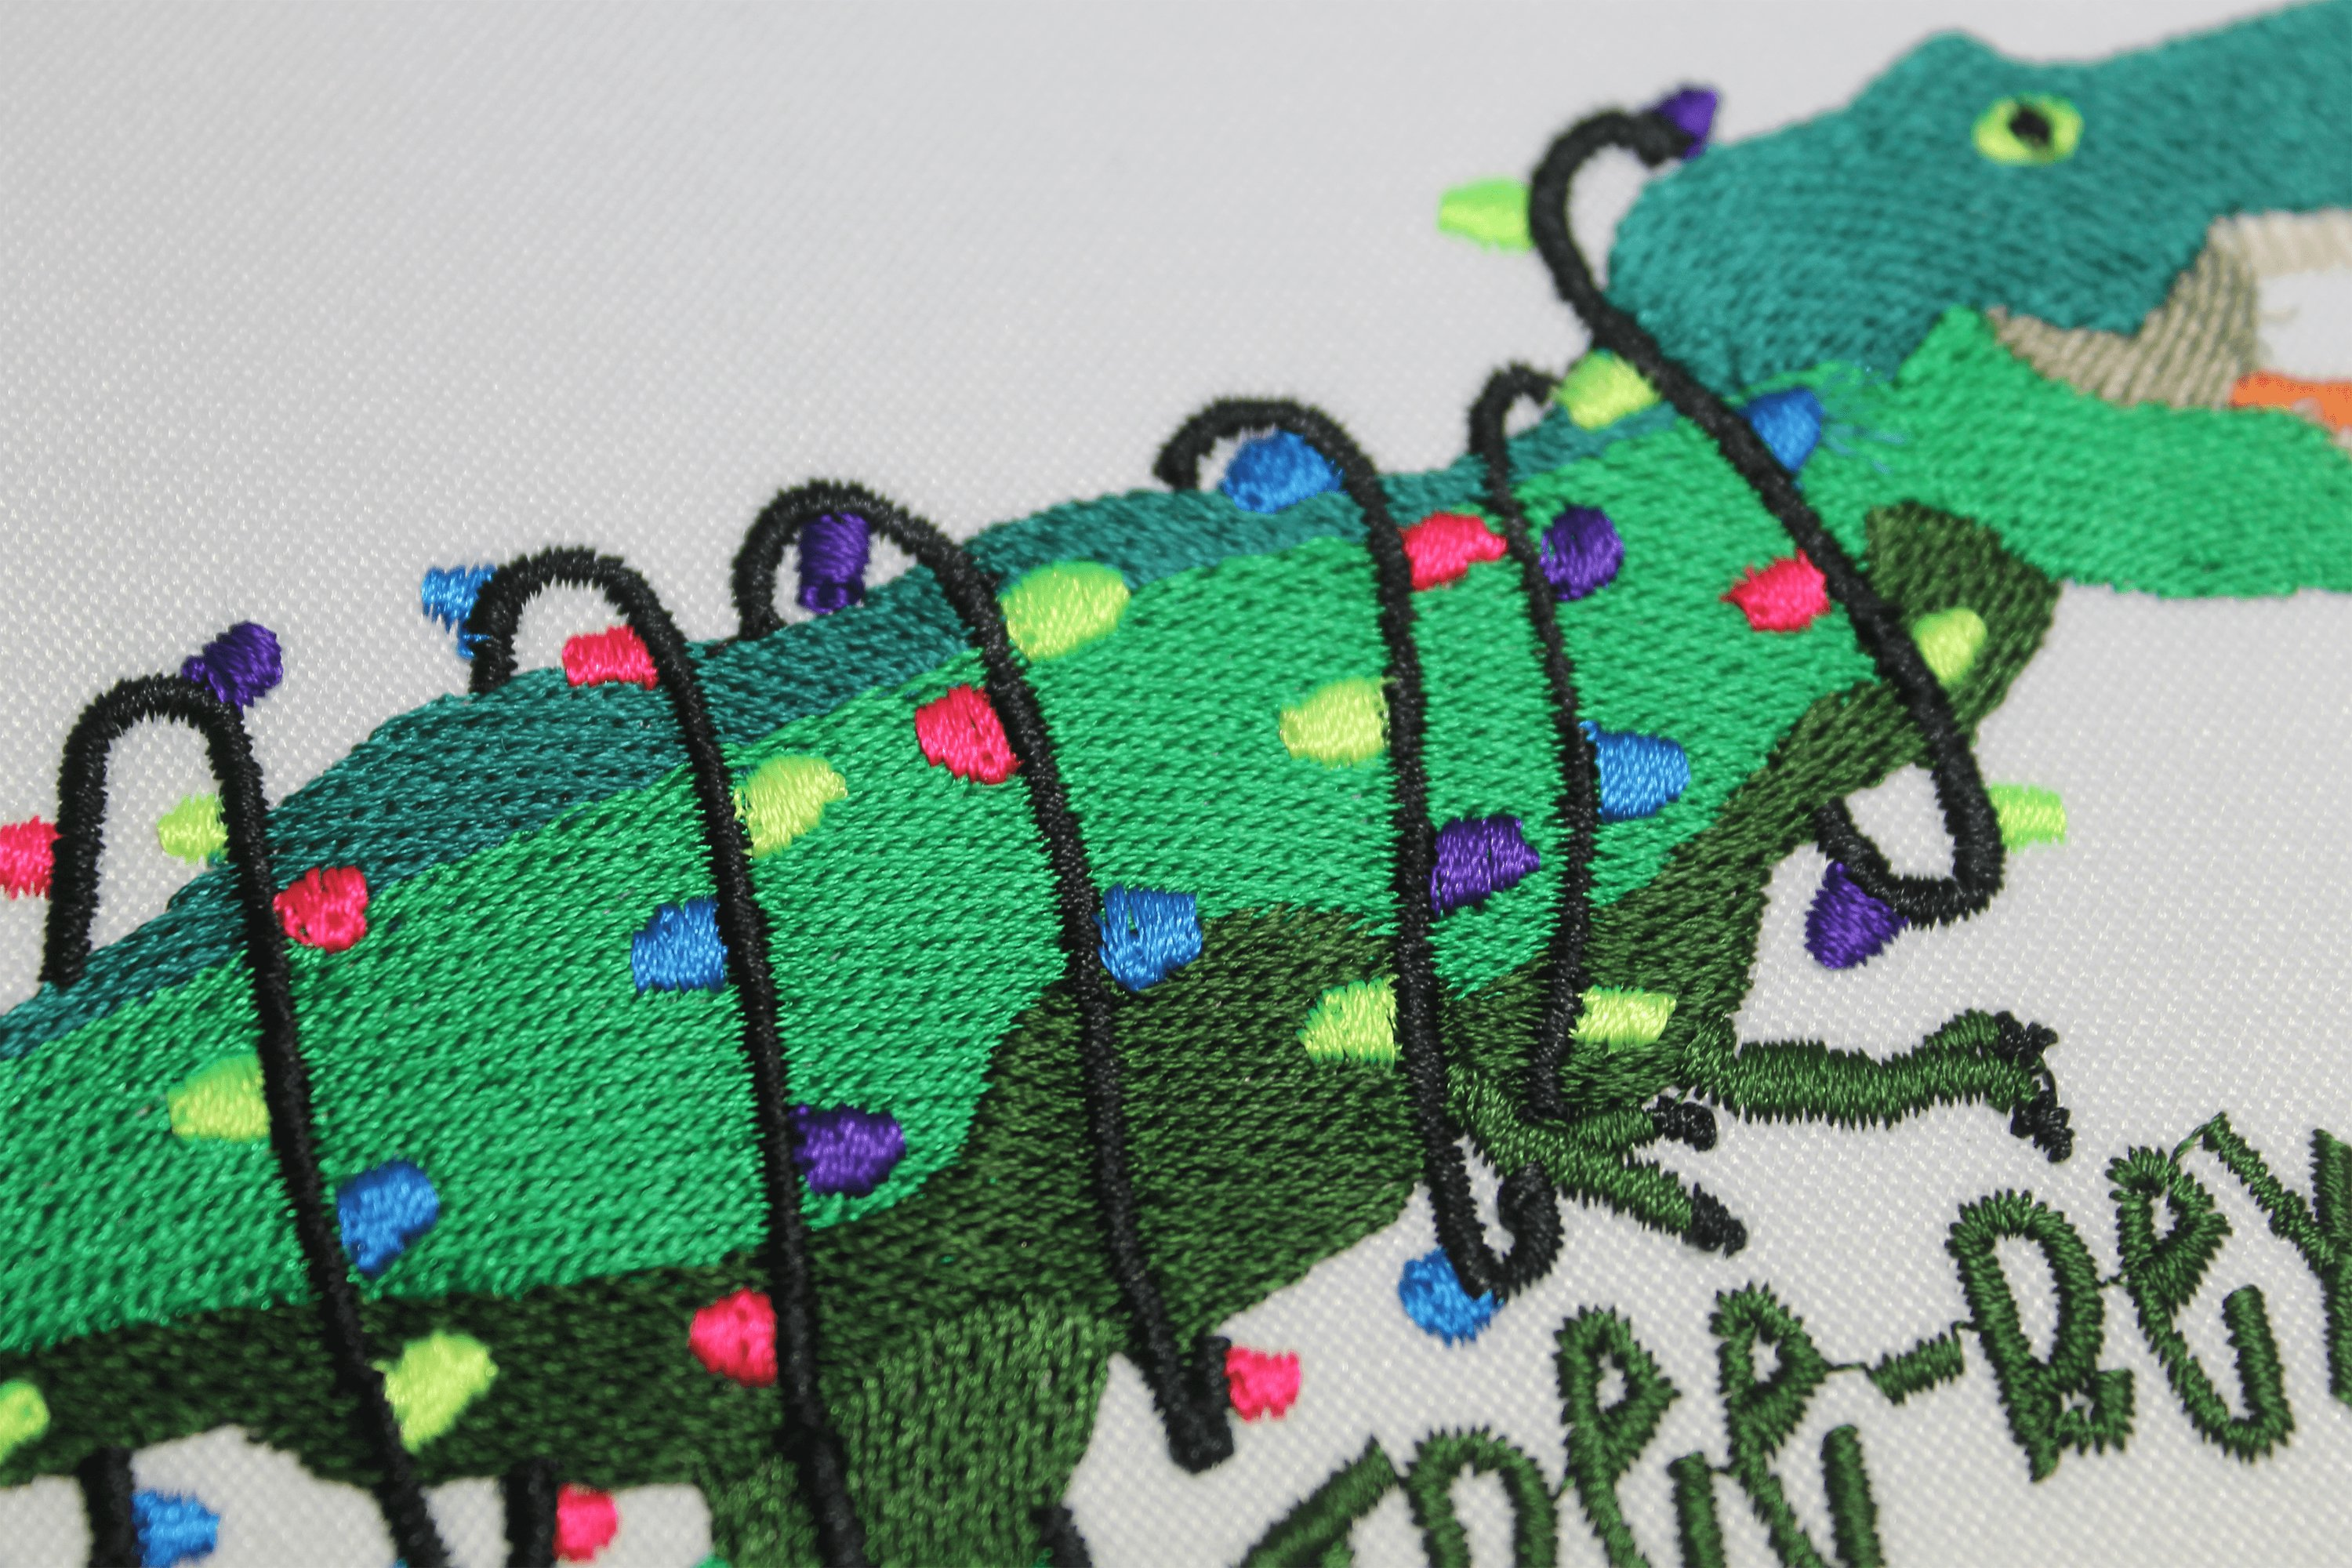 Christmas T-rex Embroidery 5 sizes, Tree-Rex with Lights example image 3